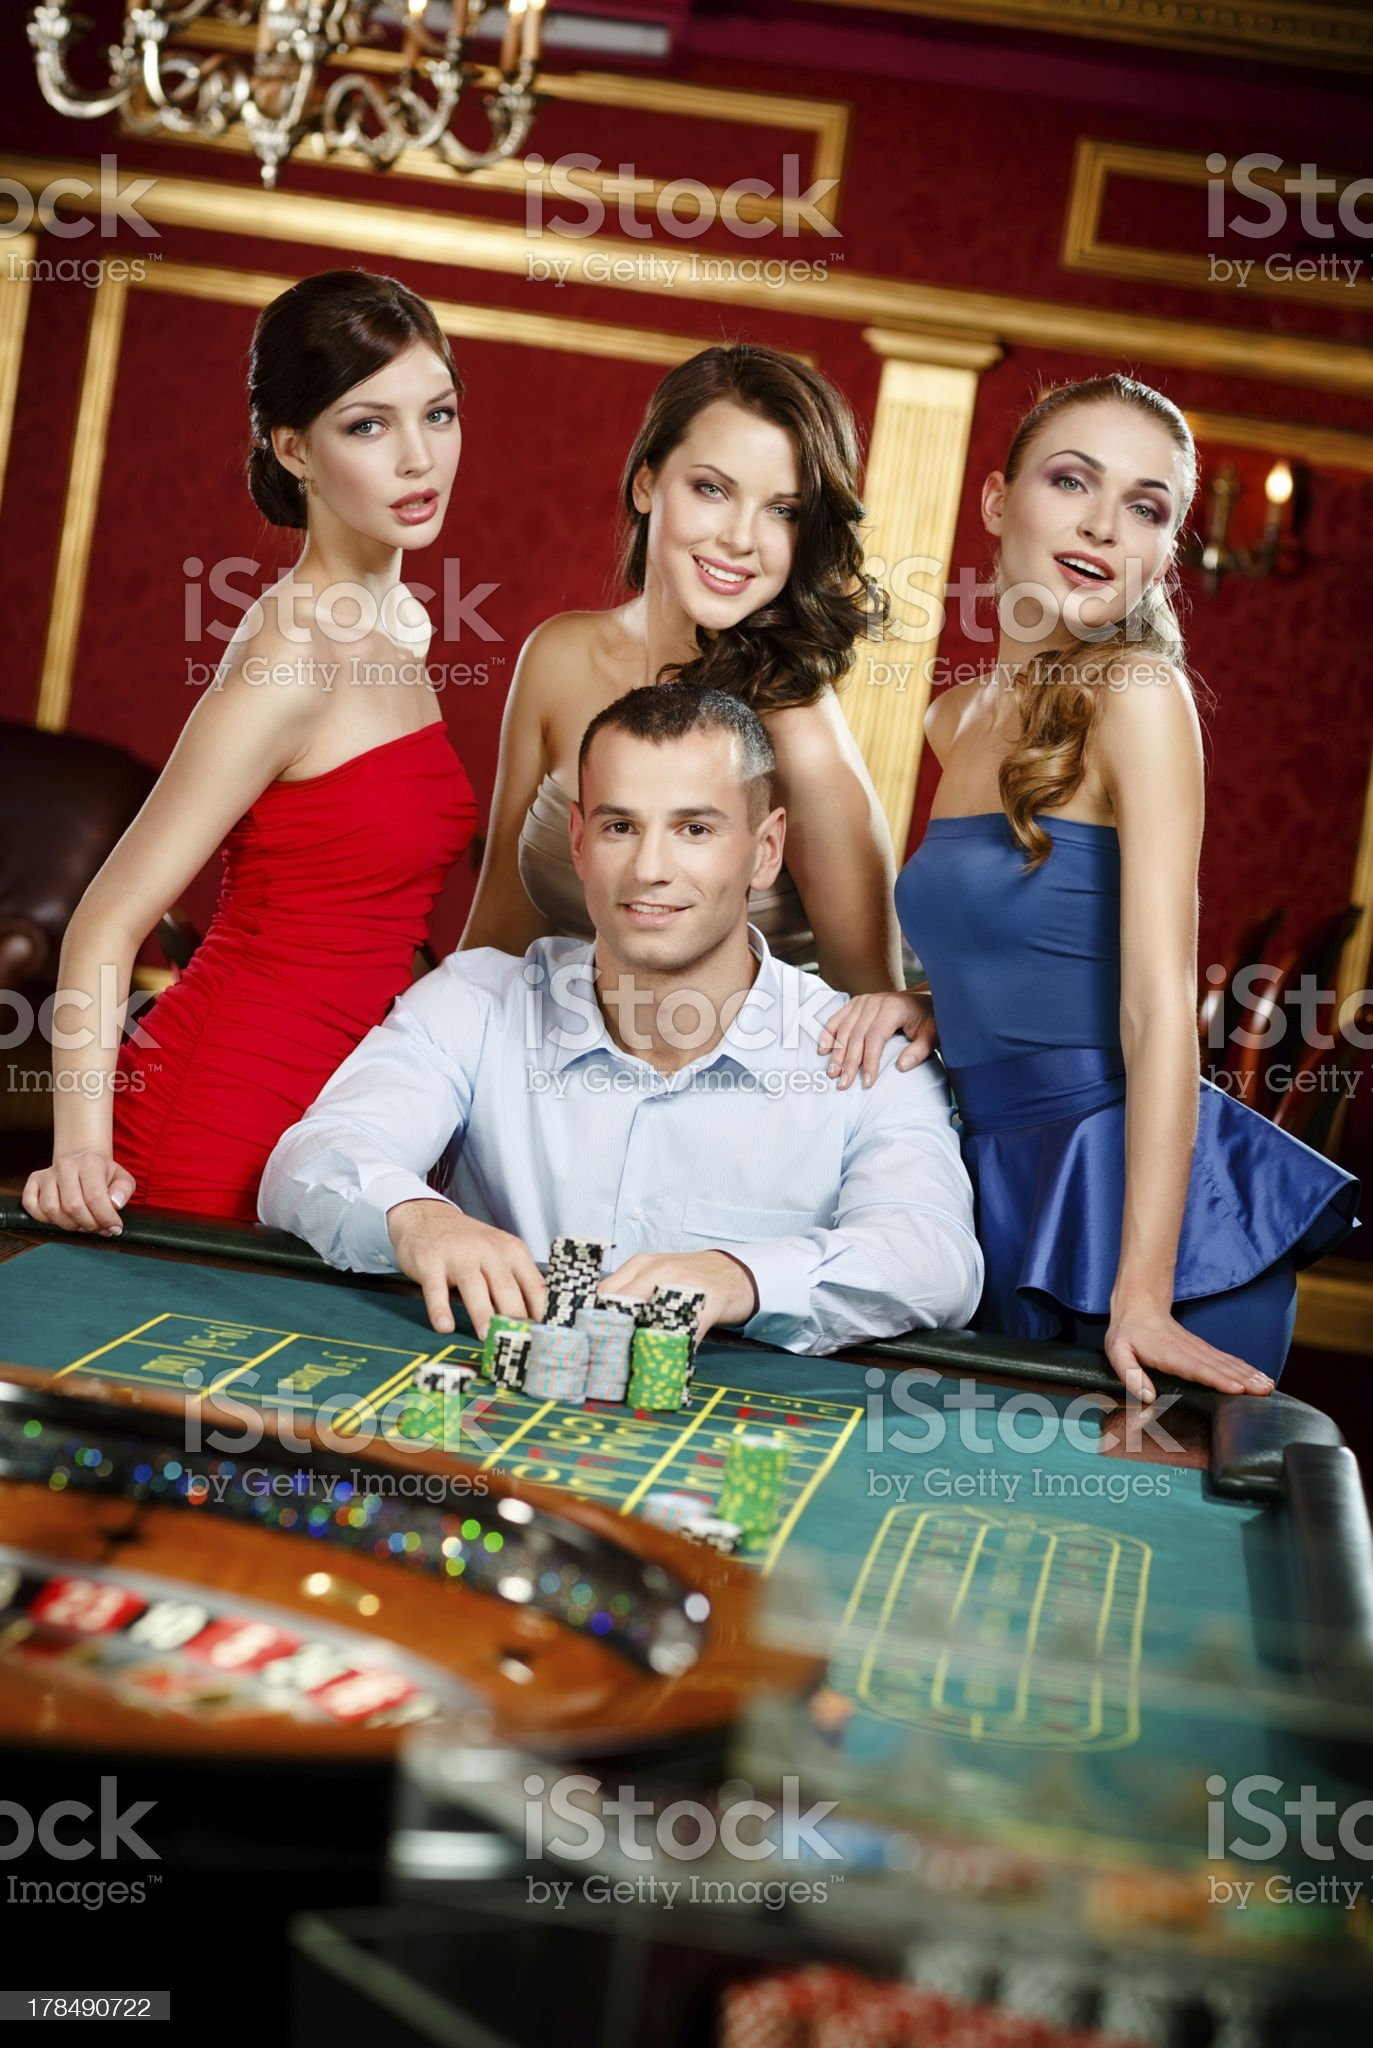 Man surrounded by young girls gambles roulette royalty-free stock photo